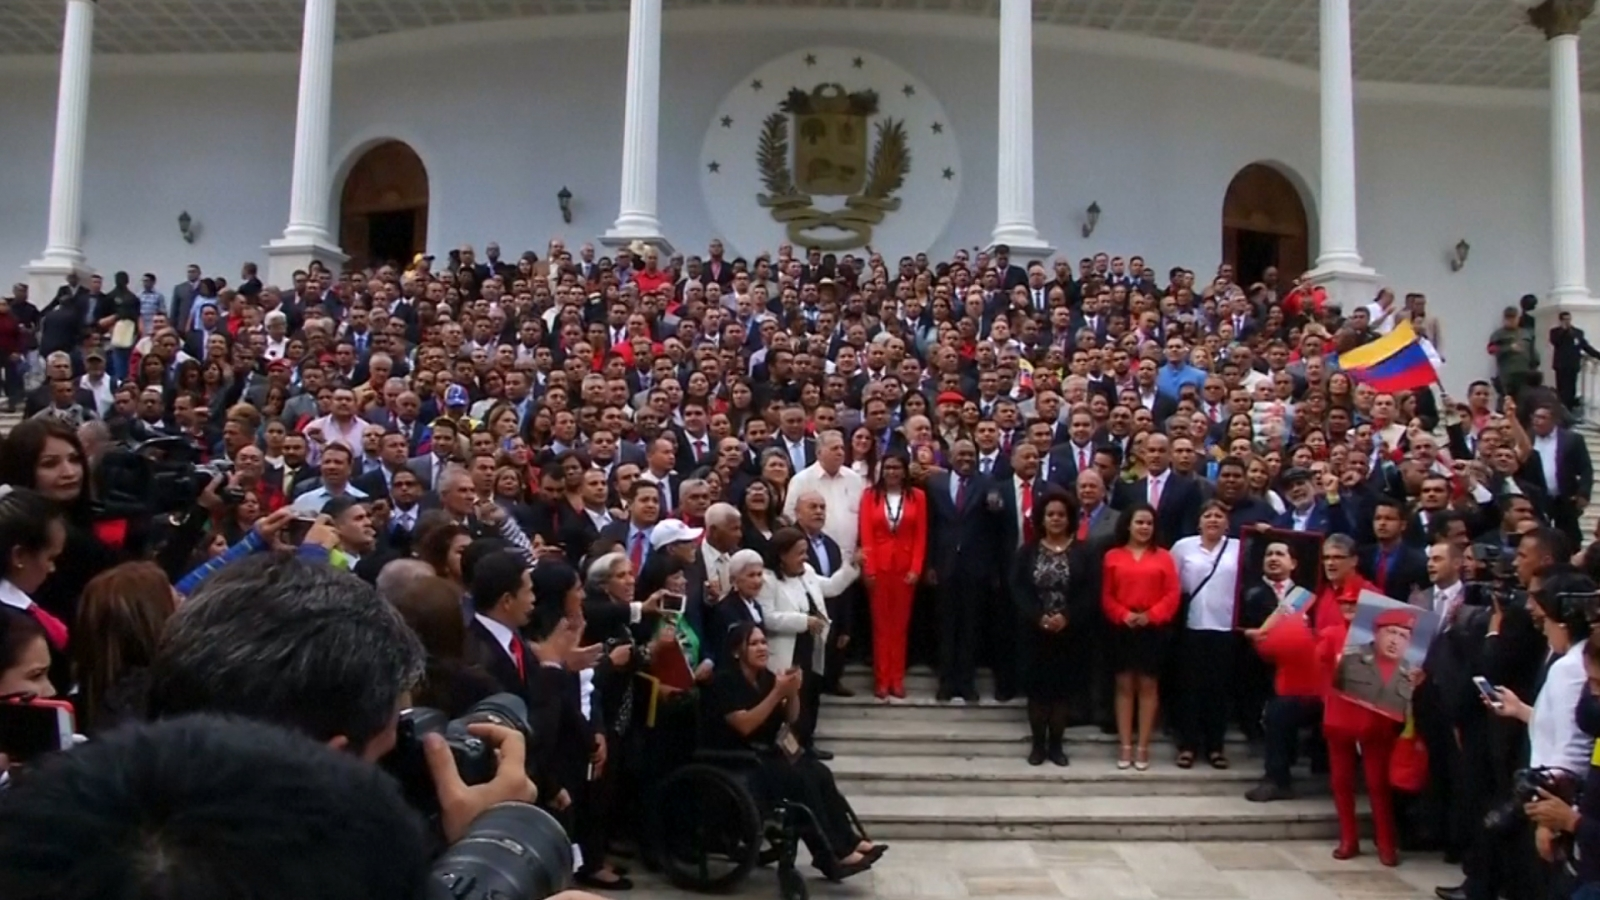 Venezuela: Inauguration of constituent assembly sparks new protests